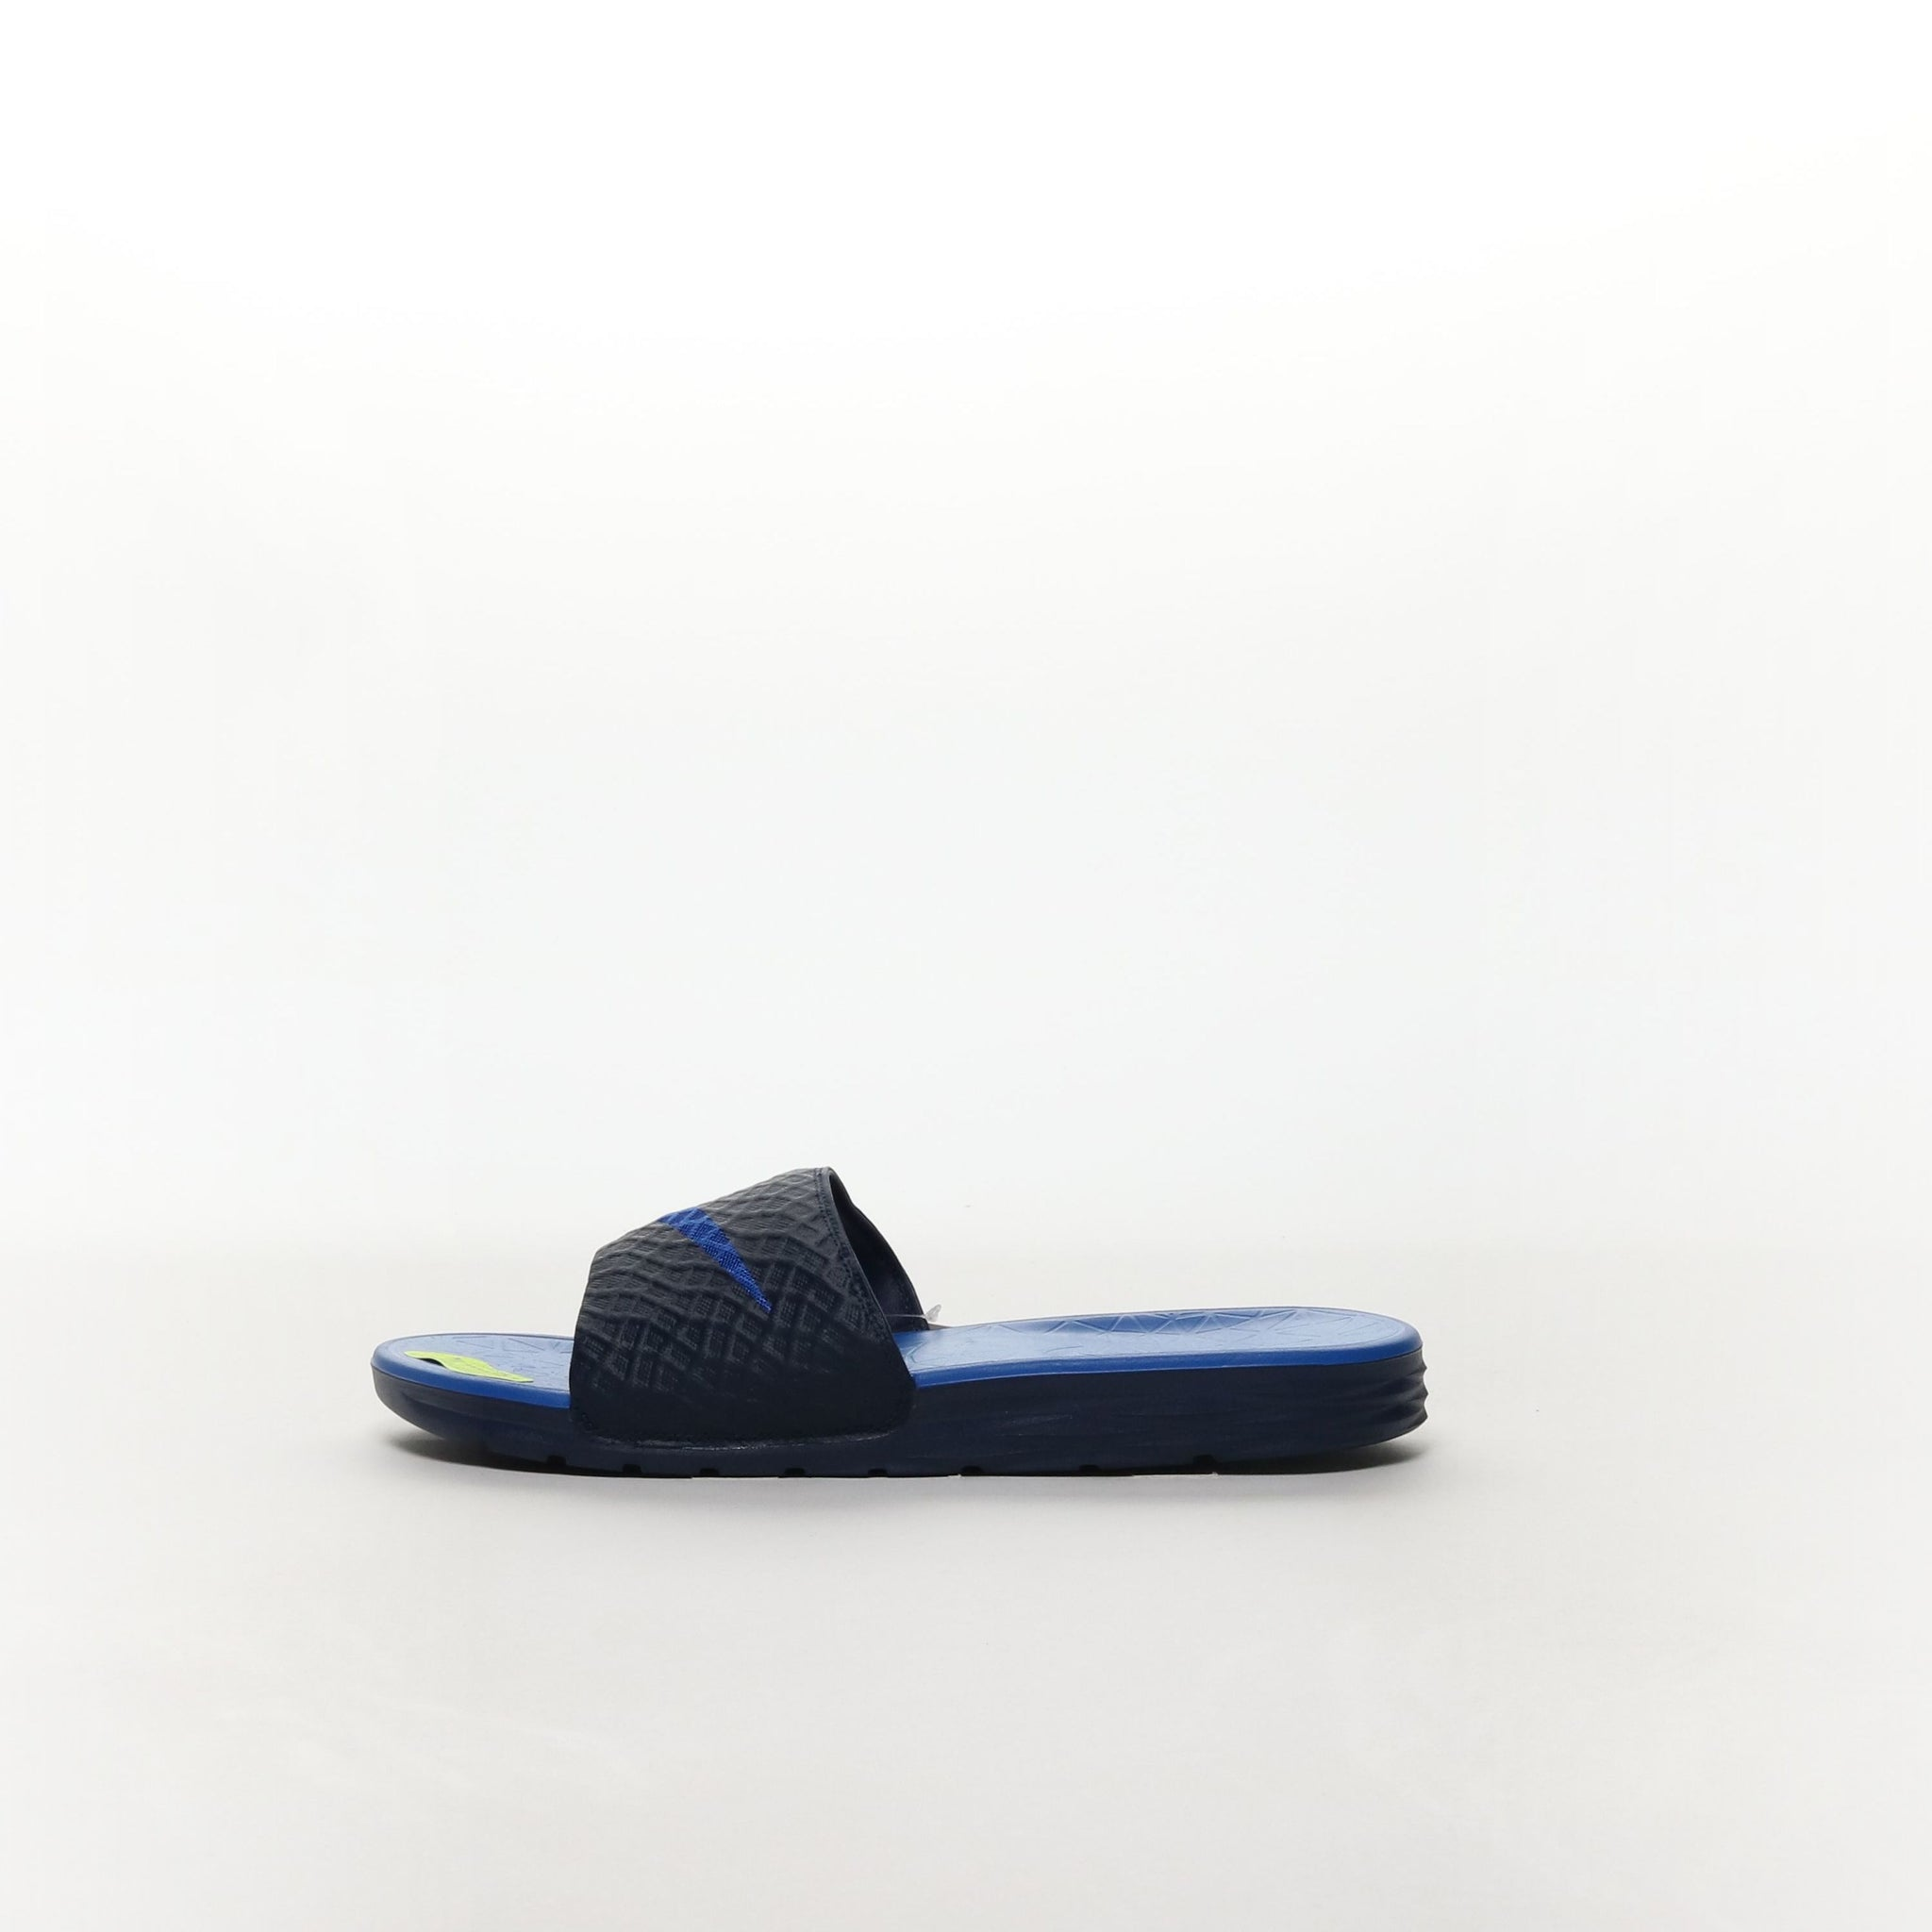 f46a6e9c76281 Nike Benassi Solarsoft Slide - MIDNIGHT NAVY LYON BLUE